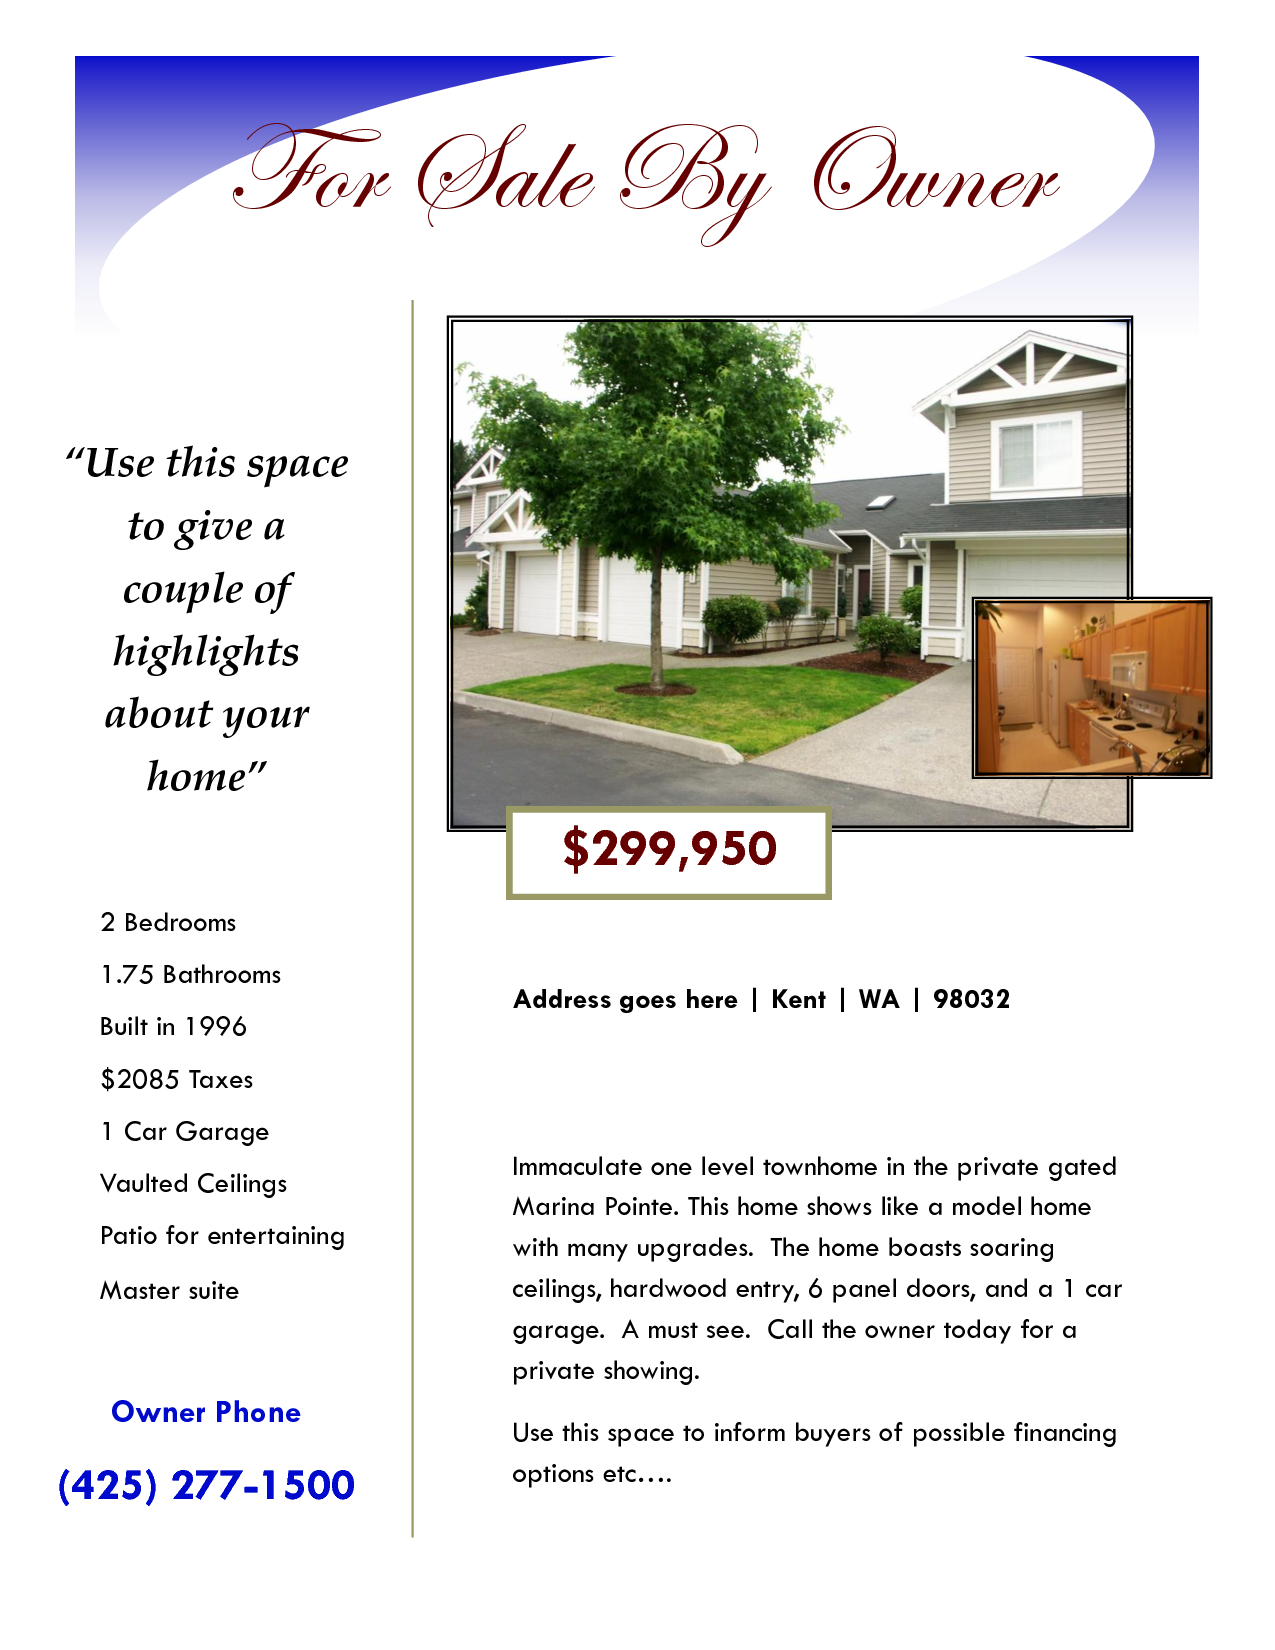 House For Sale Flyer   Google Search  House For Sale Sign Template